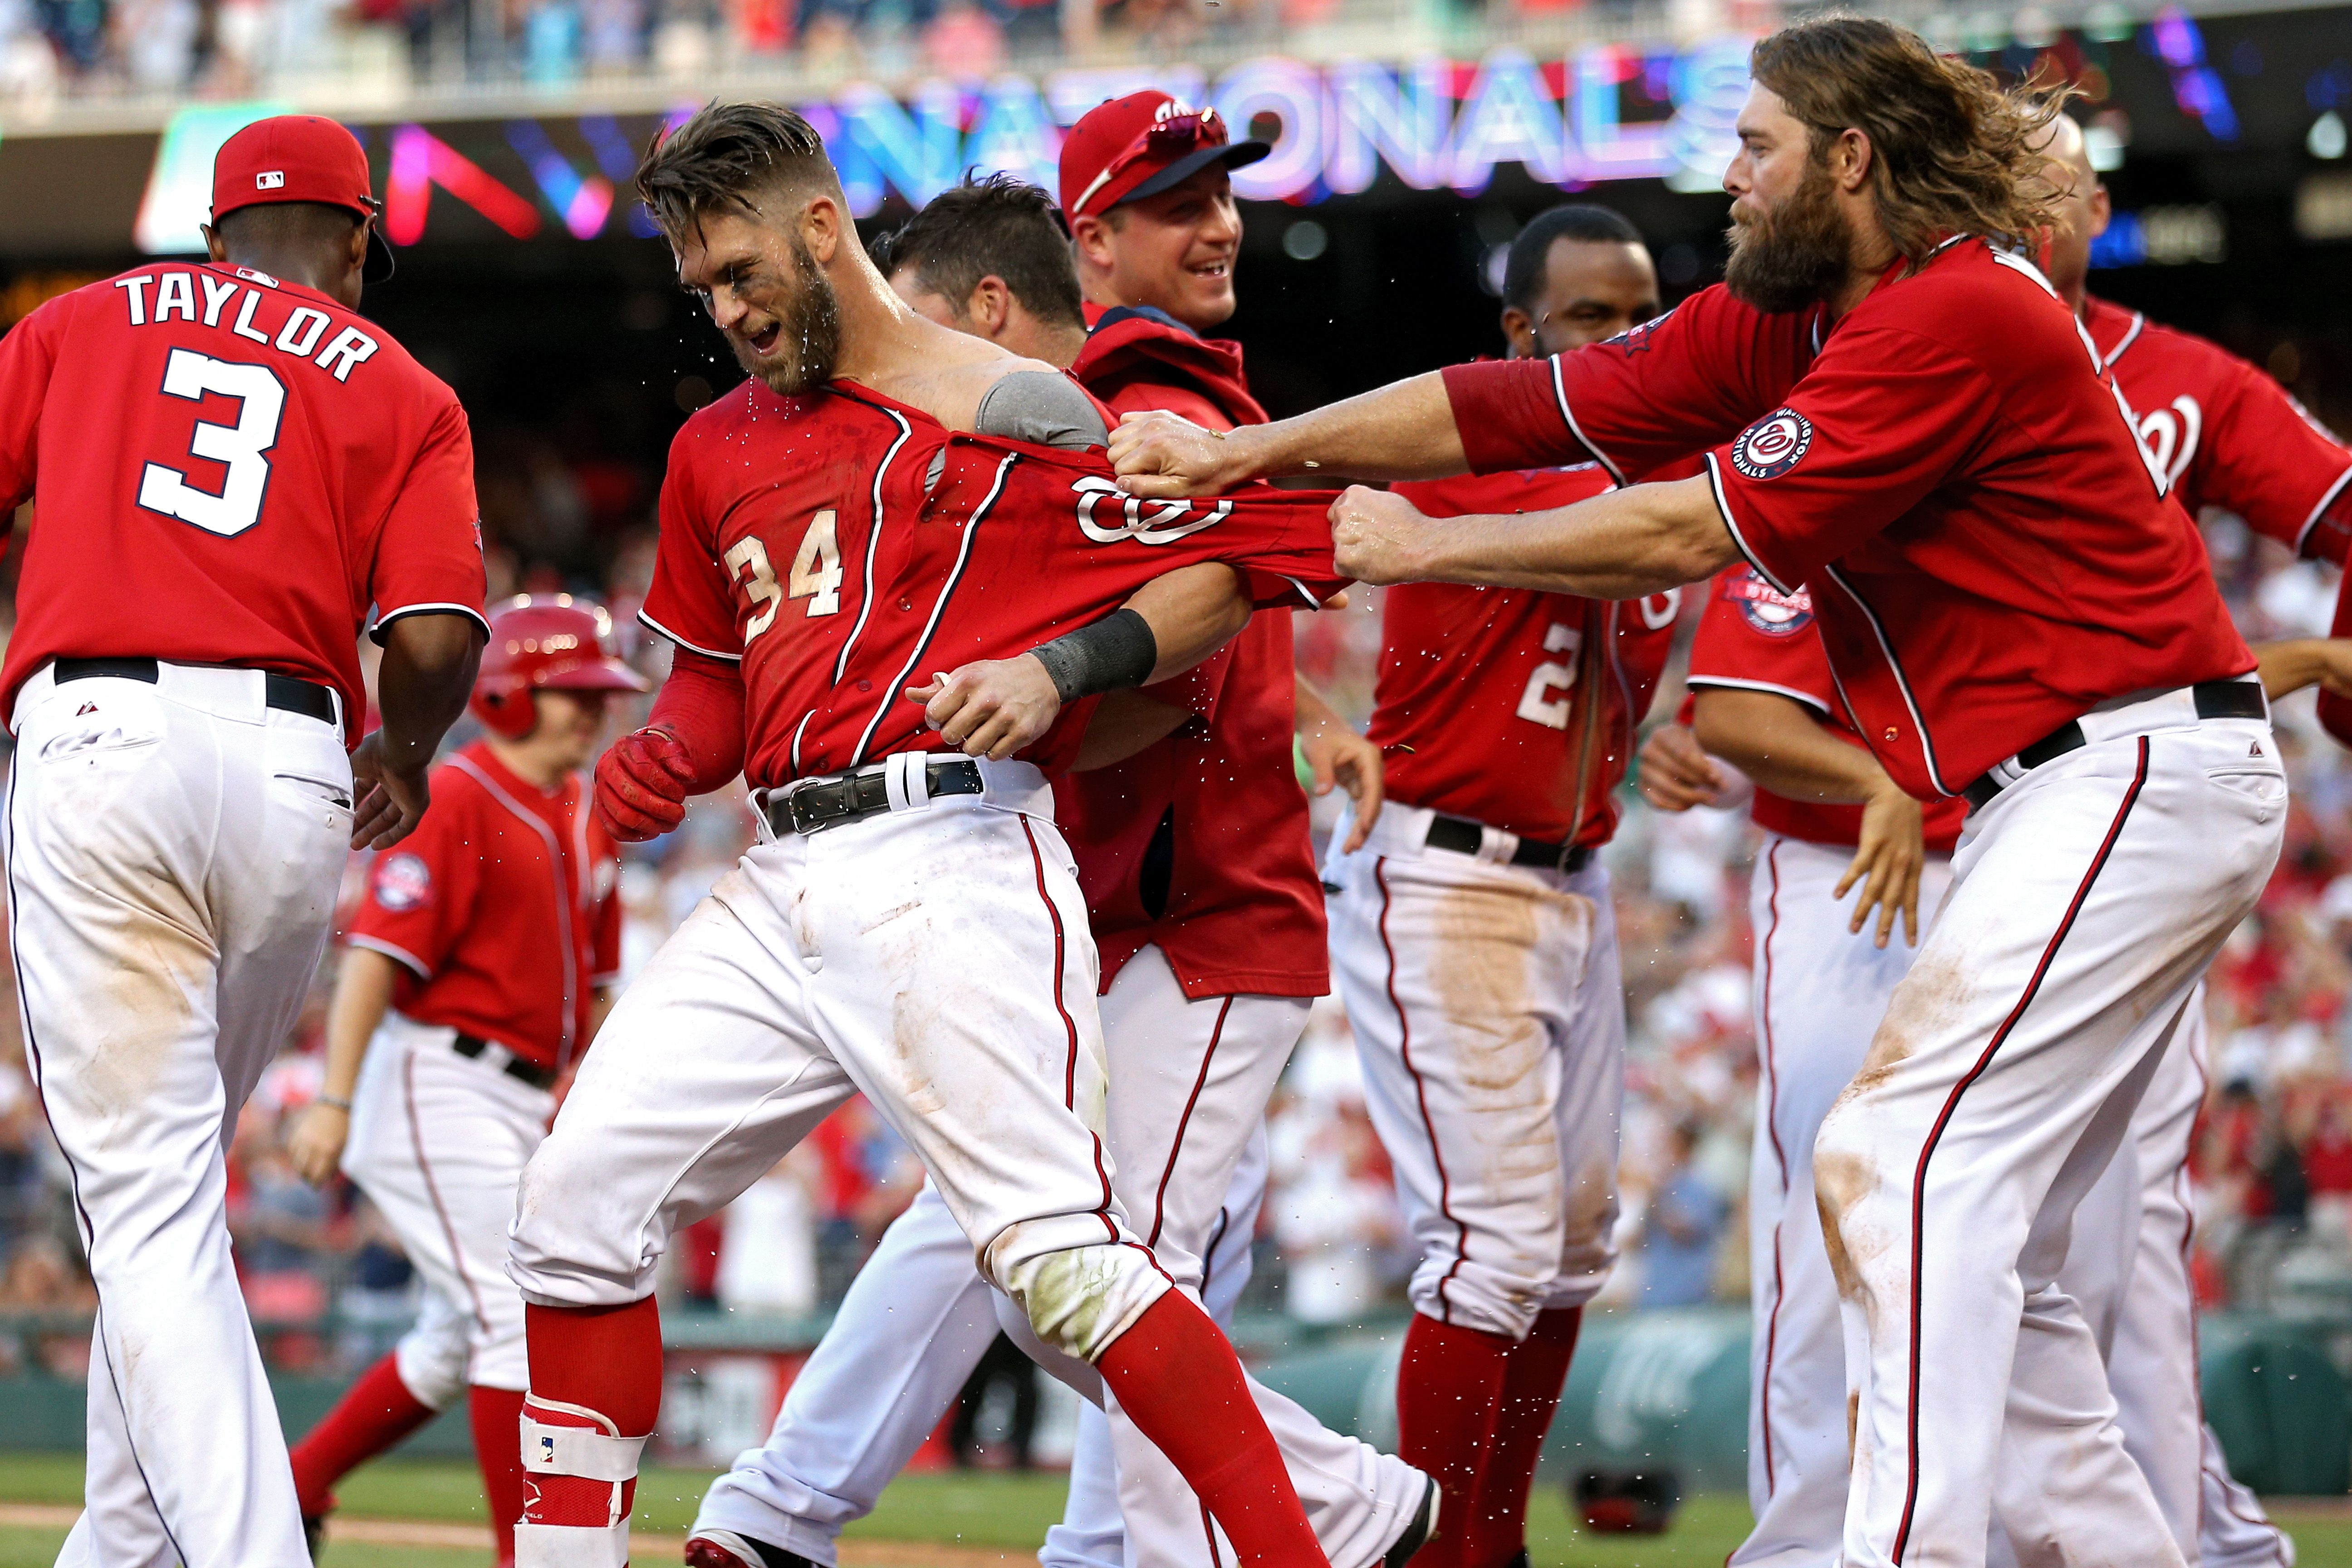 Bryce Harper Hit The Third Walk Off Home Run Of His Career This Afternoon To Lift The Nationals To An 8 6 Win Bryce Harper Washington Nationals Braves